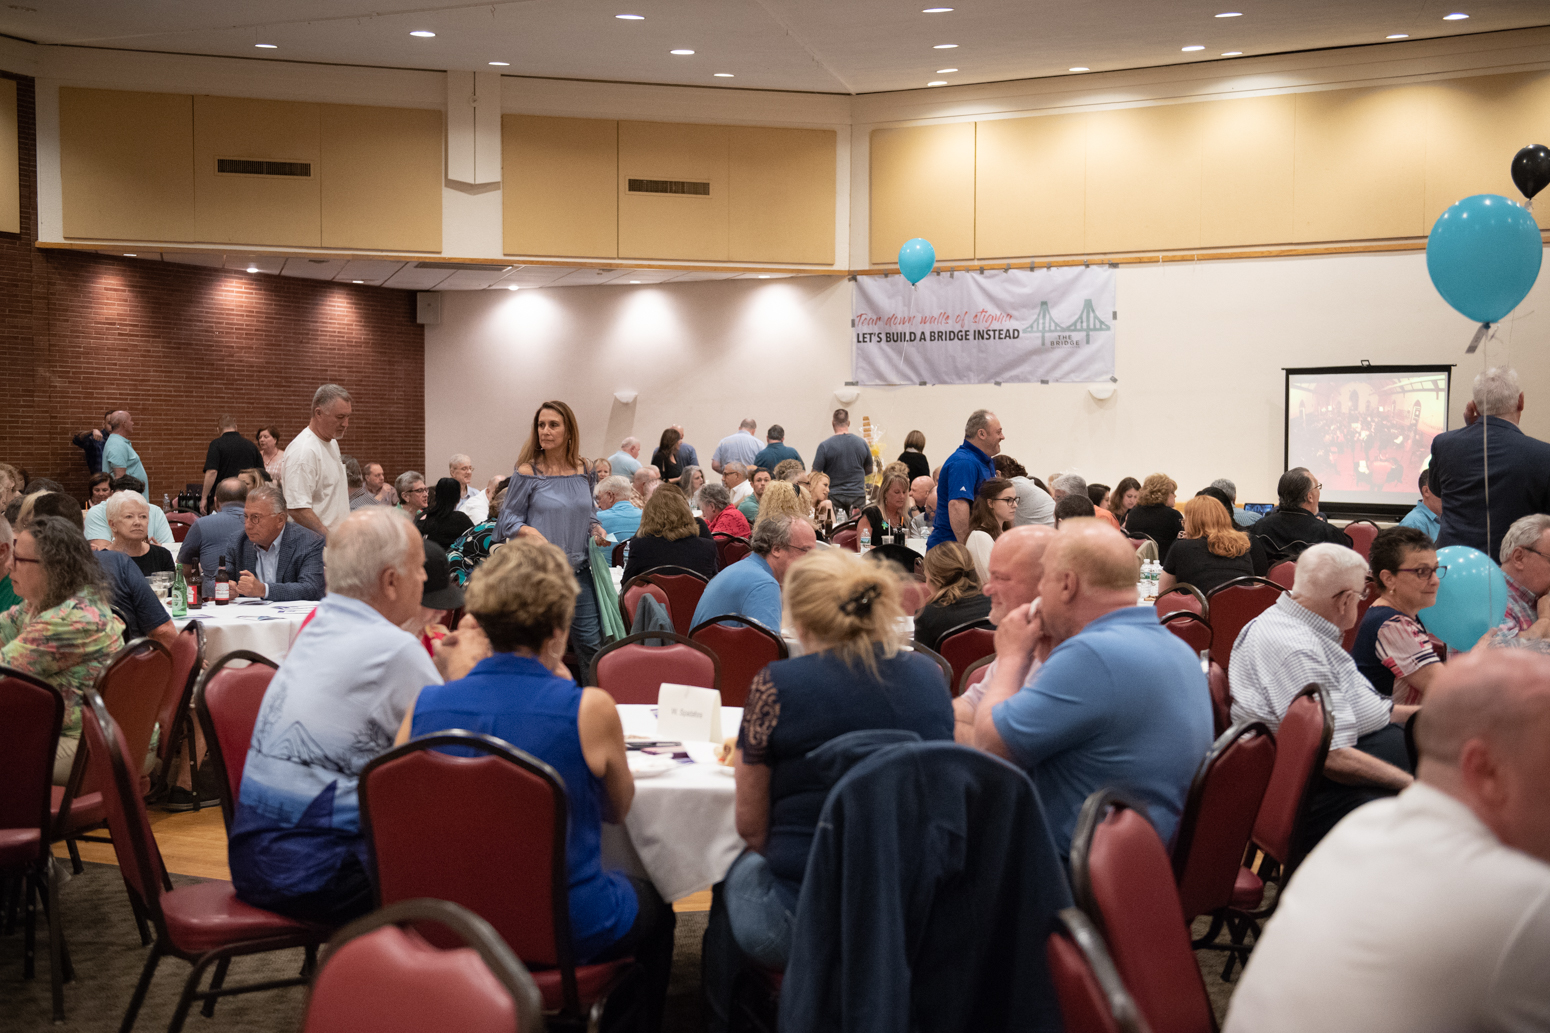 2nd-annual-togetherwecan-moa-comedy-night-fundraiser_28022292968_o.jpg